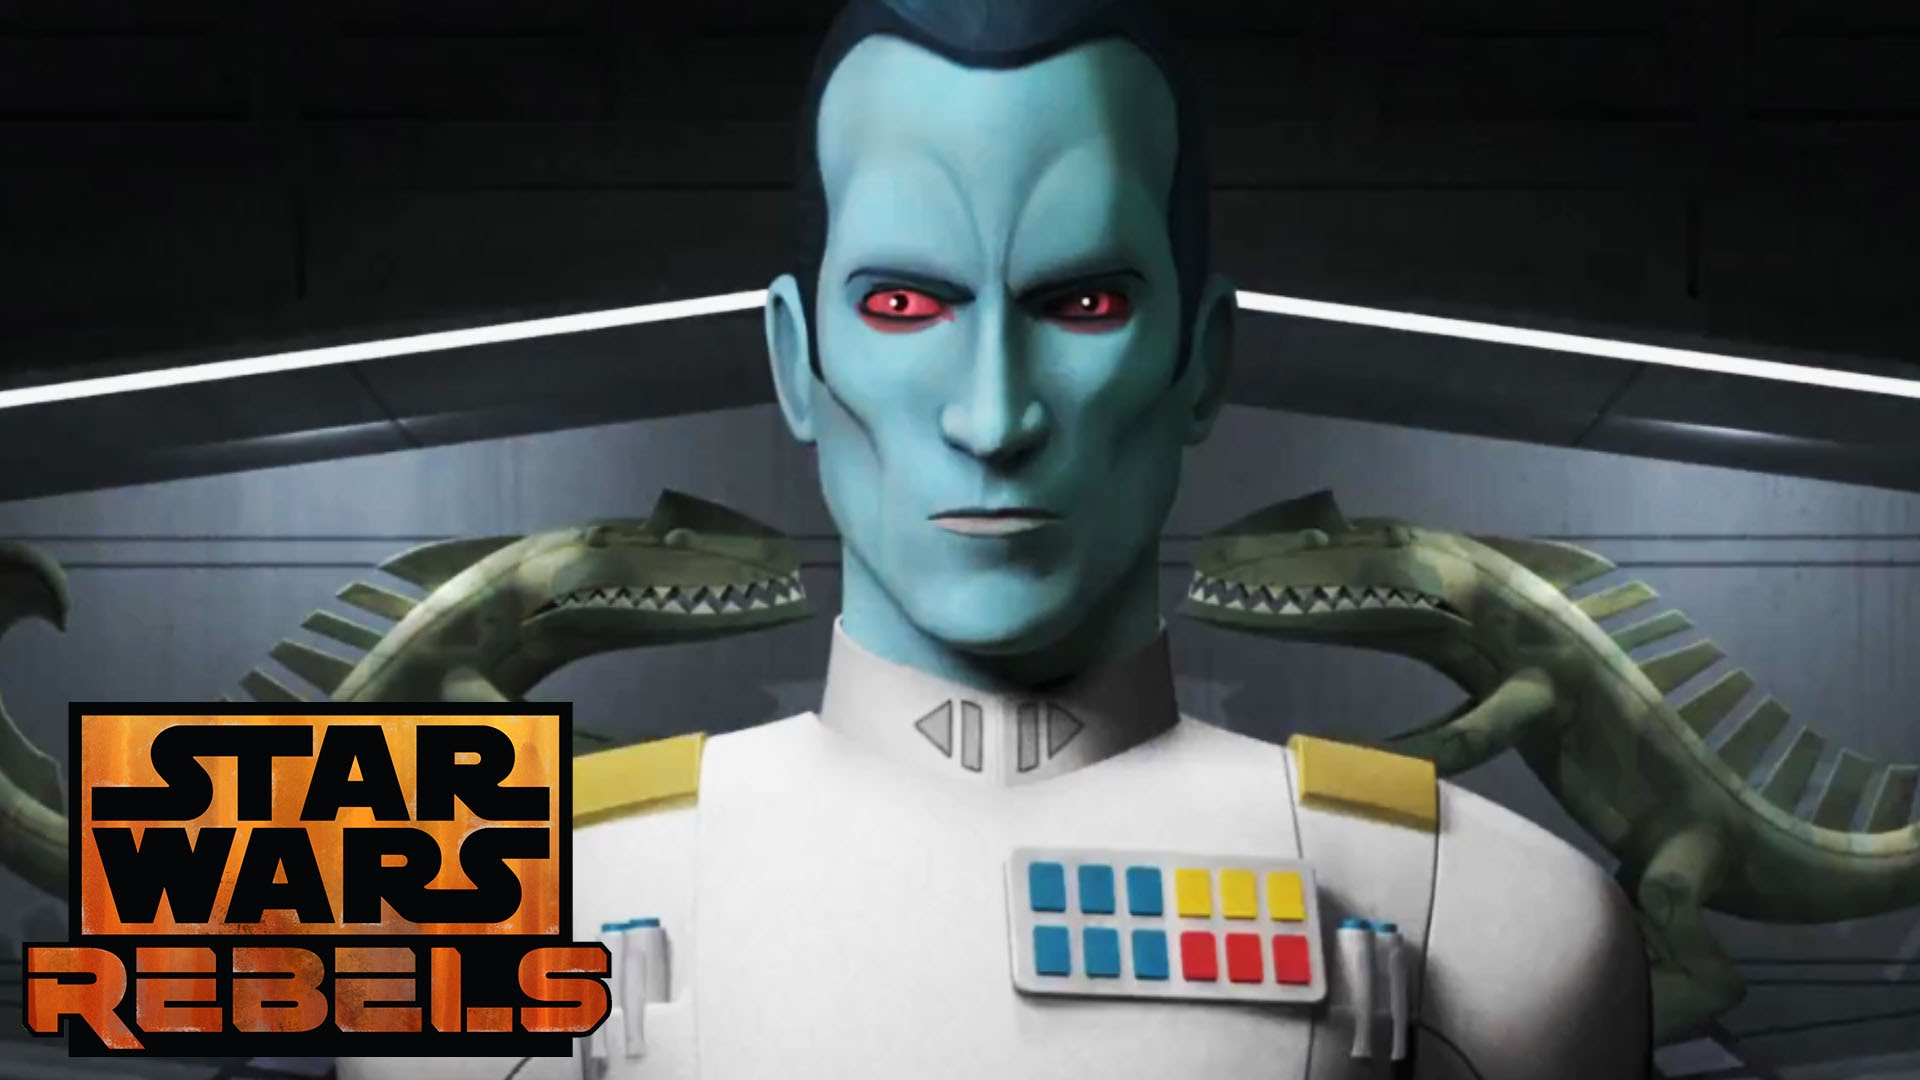 New Star Wars Rebels Season 3 Trailer Finally Kills The Expanded Universe Player One